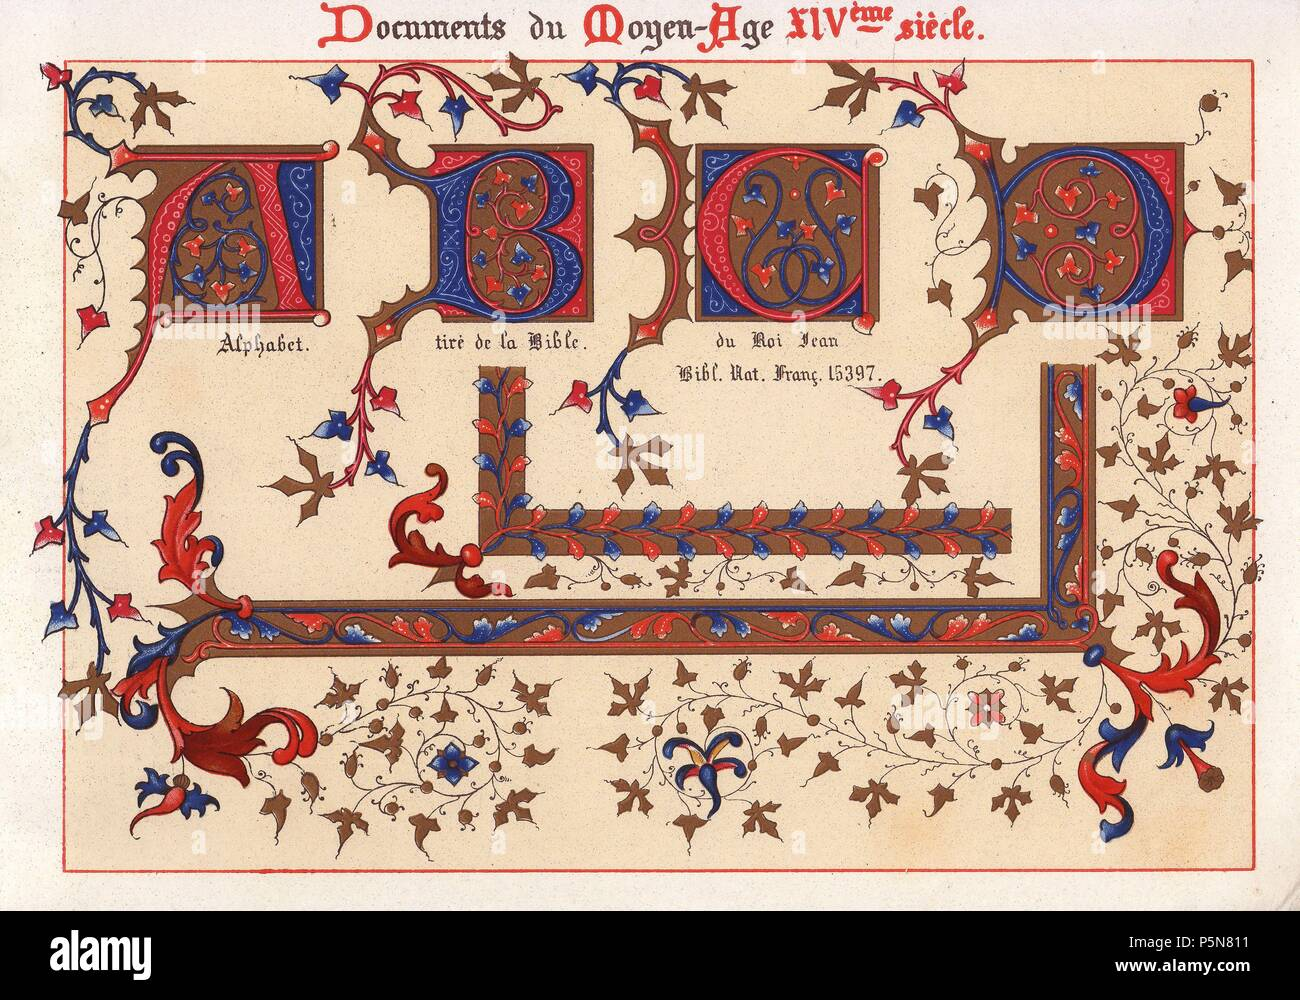 alphabet-from-the-illuminated-bible-of-king-john-from-the-bibliotheque-nationale-de-france-15397-ernest-guillot-ornementation-des-manuscrits-au-moyen-age-ornamentation-from-manuscripts-of-the-middle-ages-1897-chromolithograph-P5N811.jpg